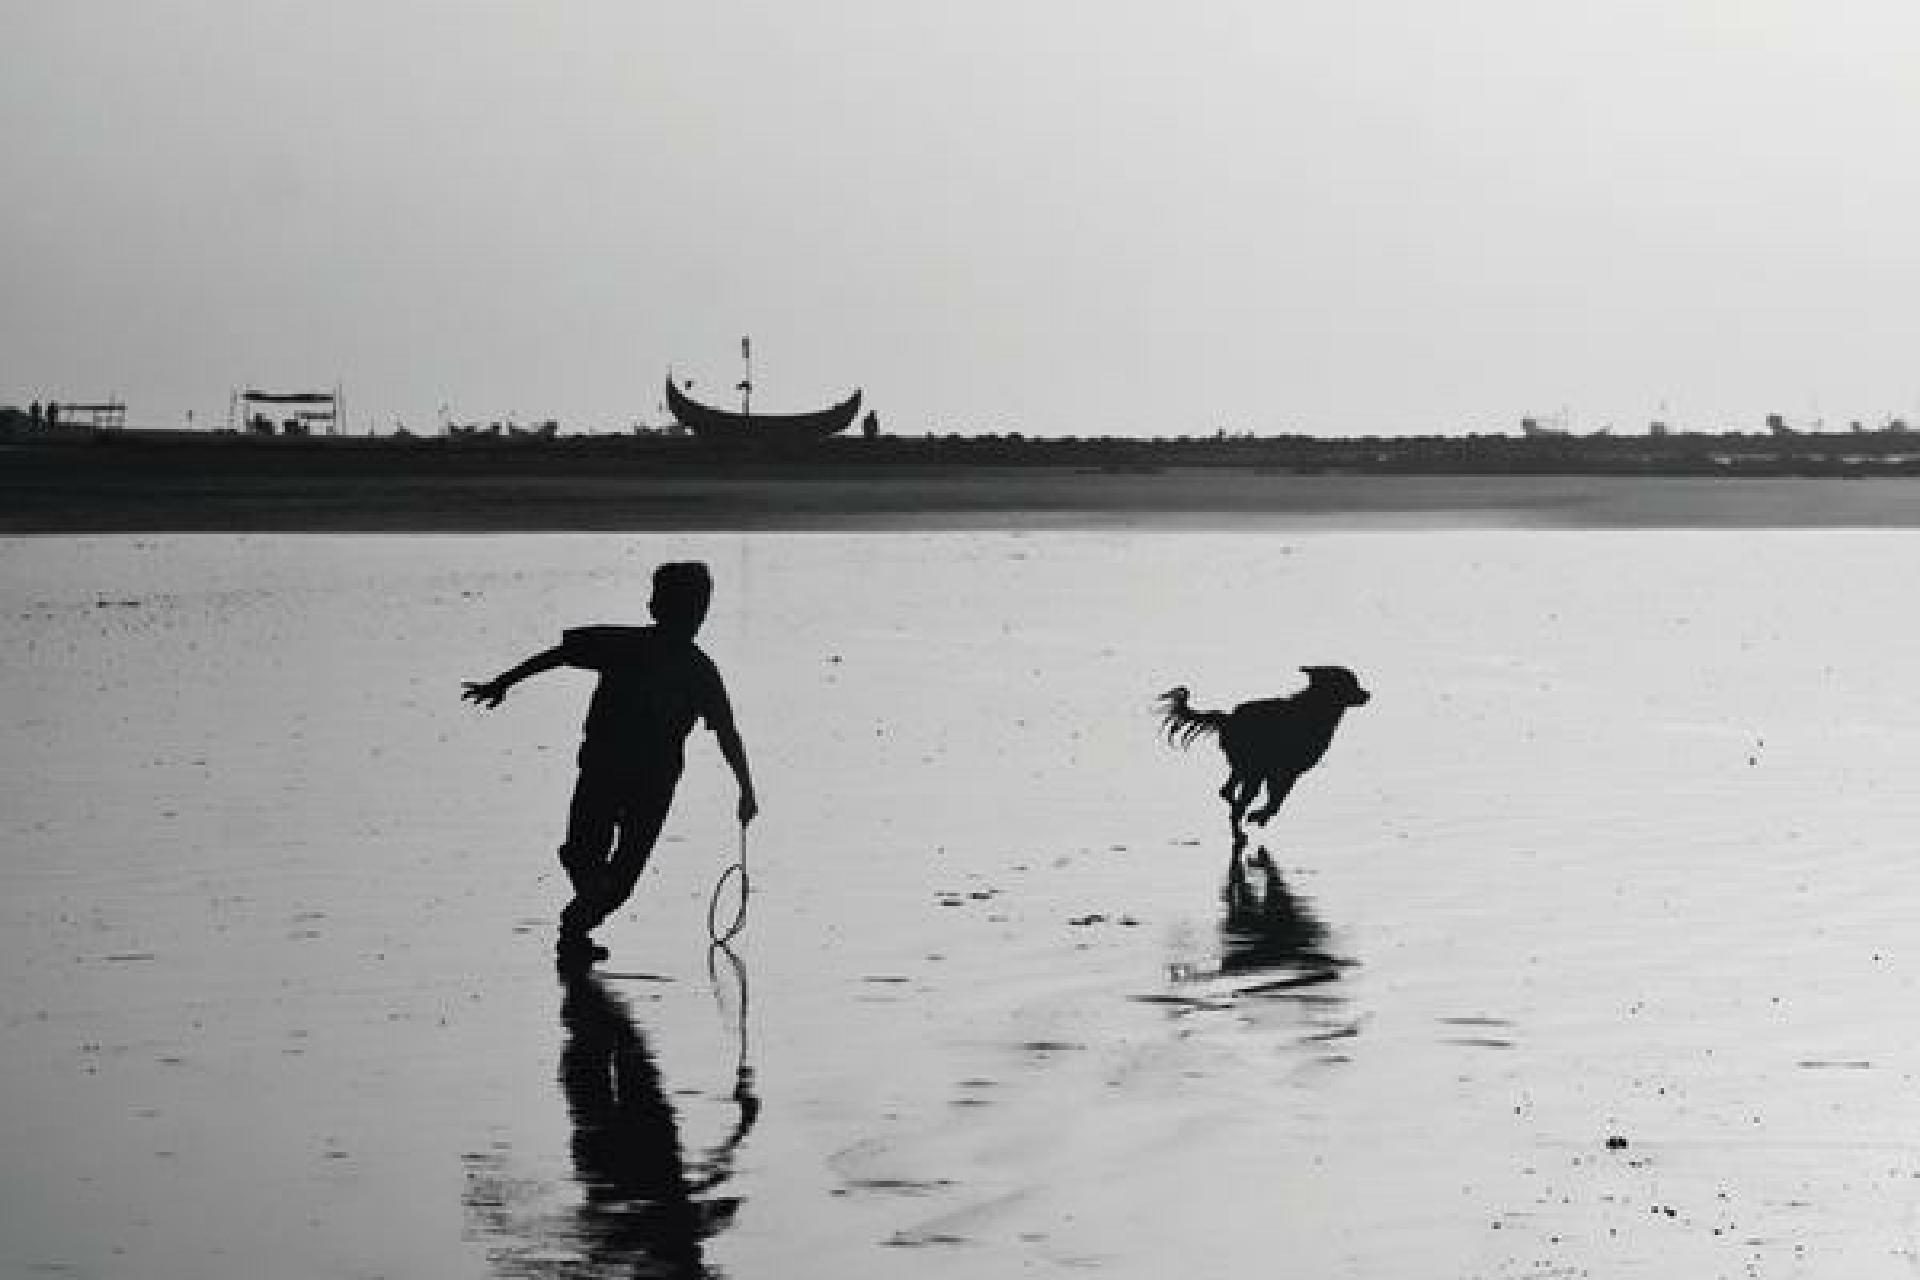 19 Mar 2010, Bangladesh, Bengal --- A child is chasing a dog on the sea beach of Saint Martin's Island, Bangladesh --- Image by © Mohammad Moniruzzaman/Corbis